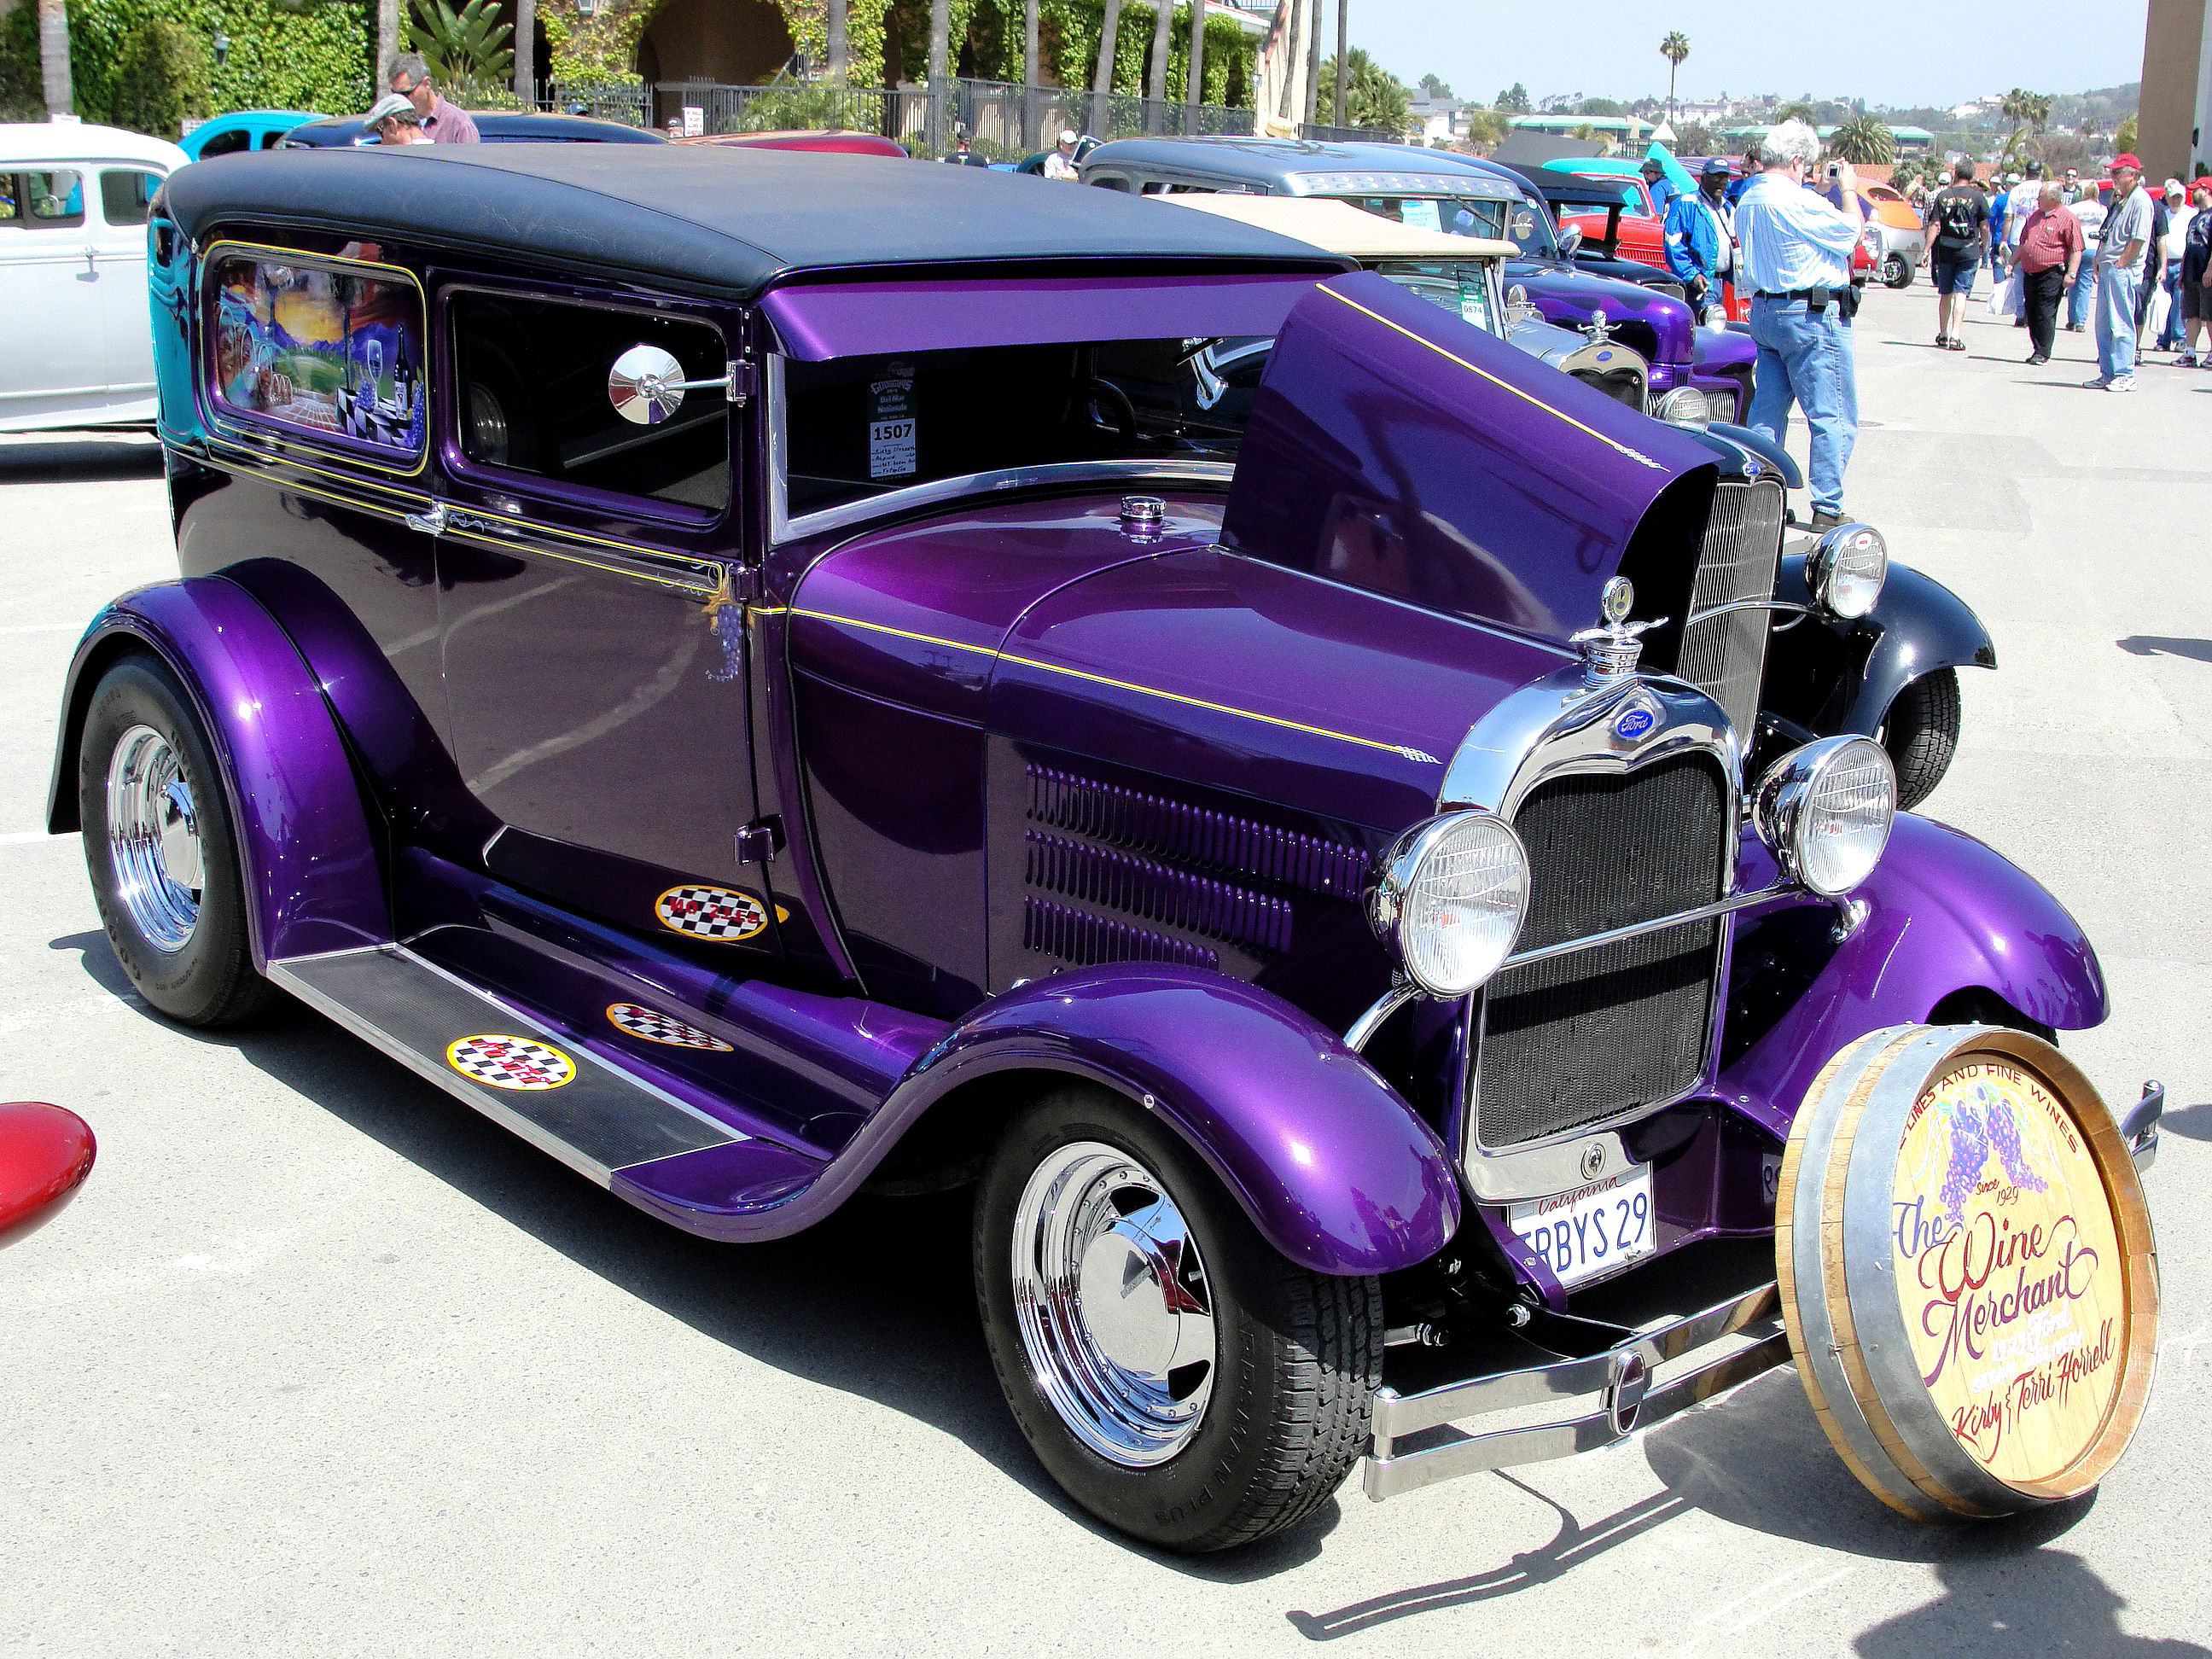 545 Hot Rod Hd Wallpapers Background Images Wallpaper Abyss